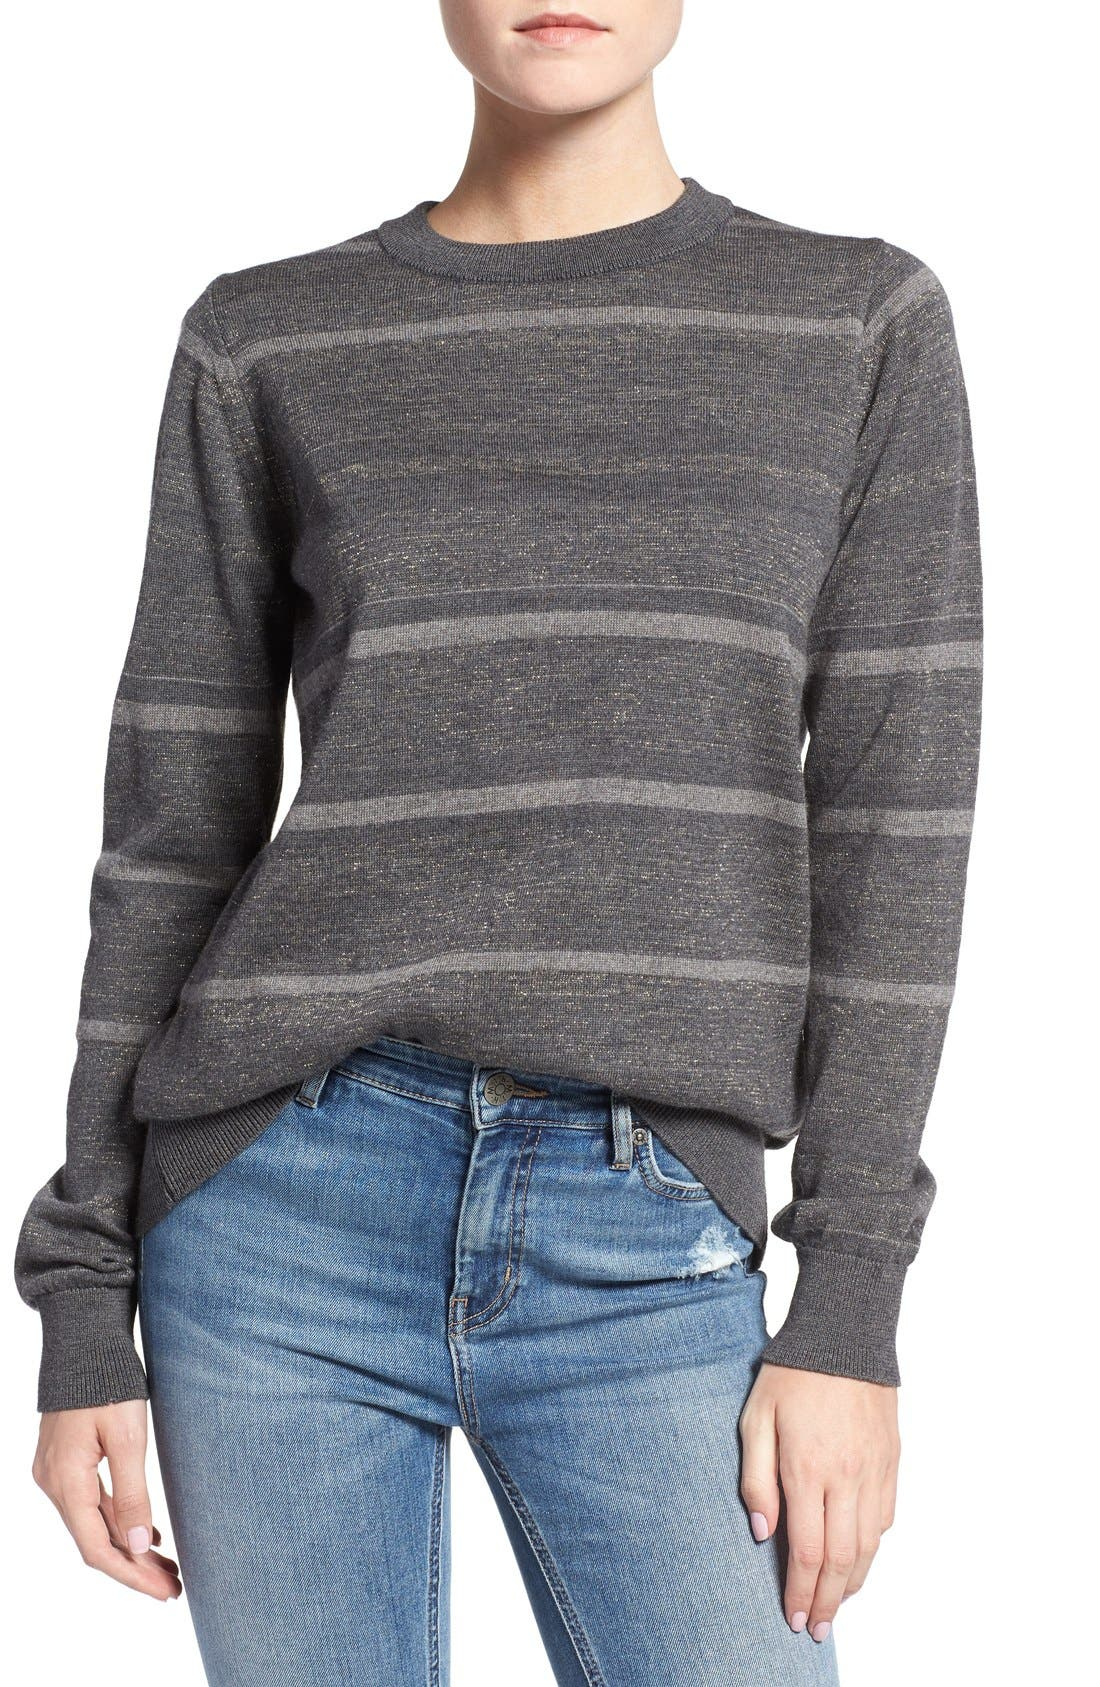 Alternate Image 1 Selected - M.i.h. Jeans 'Falls' Metallic Stripe Merino Wool Sweater